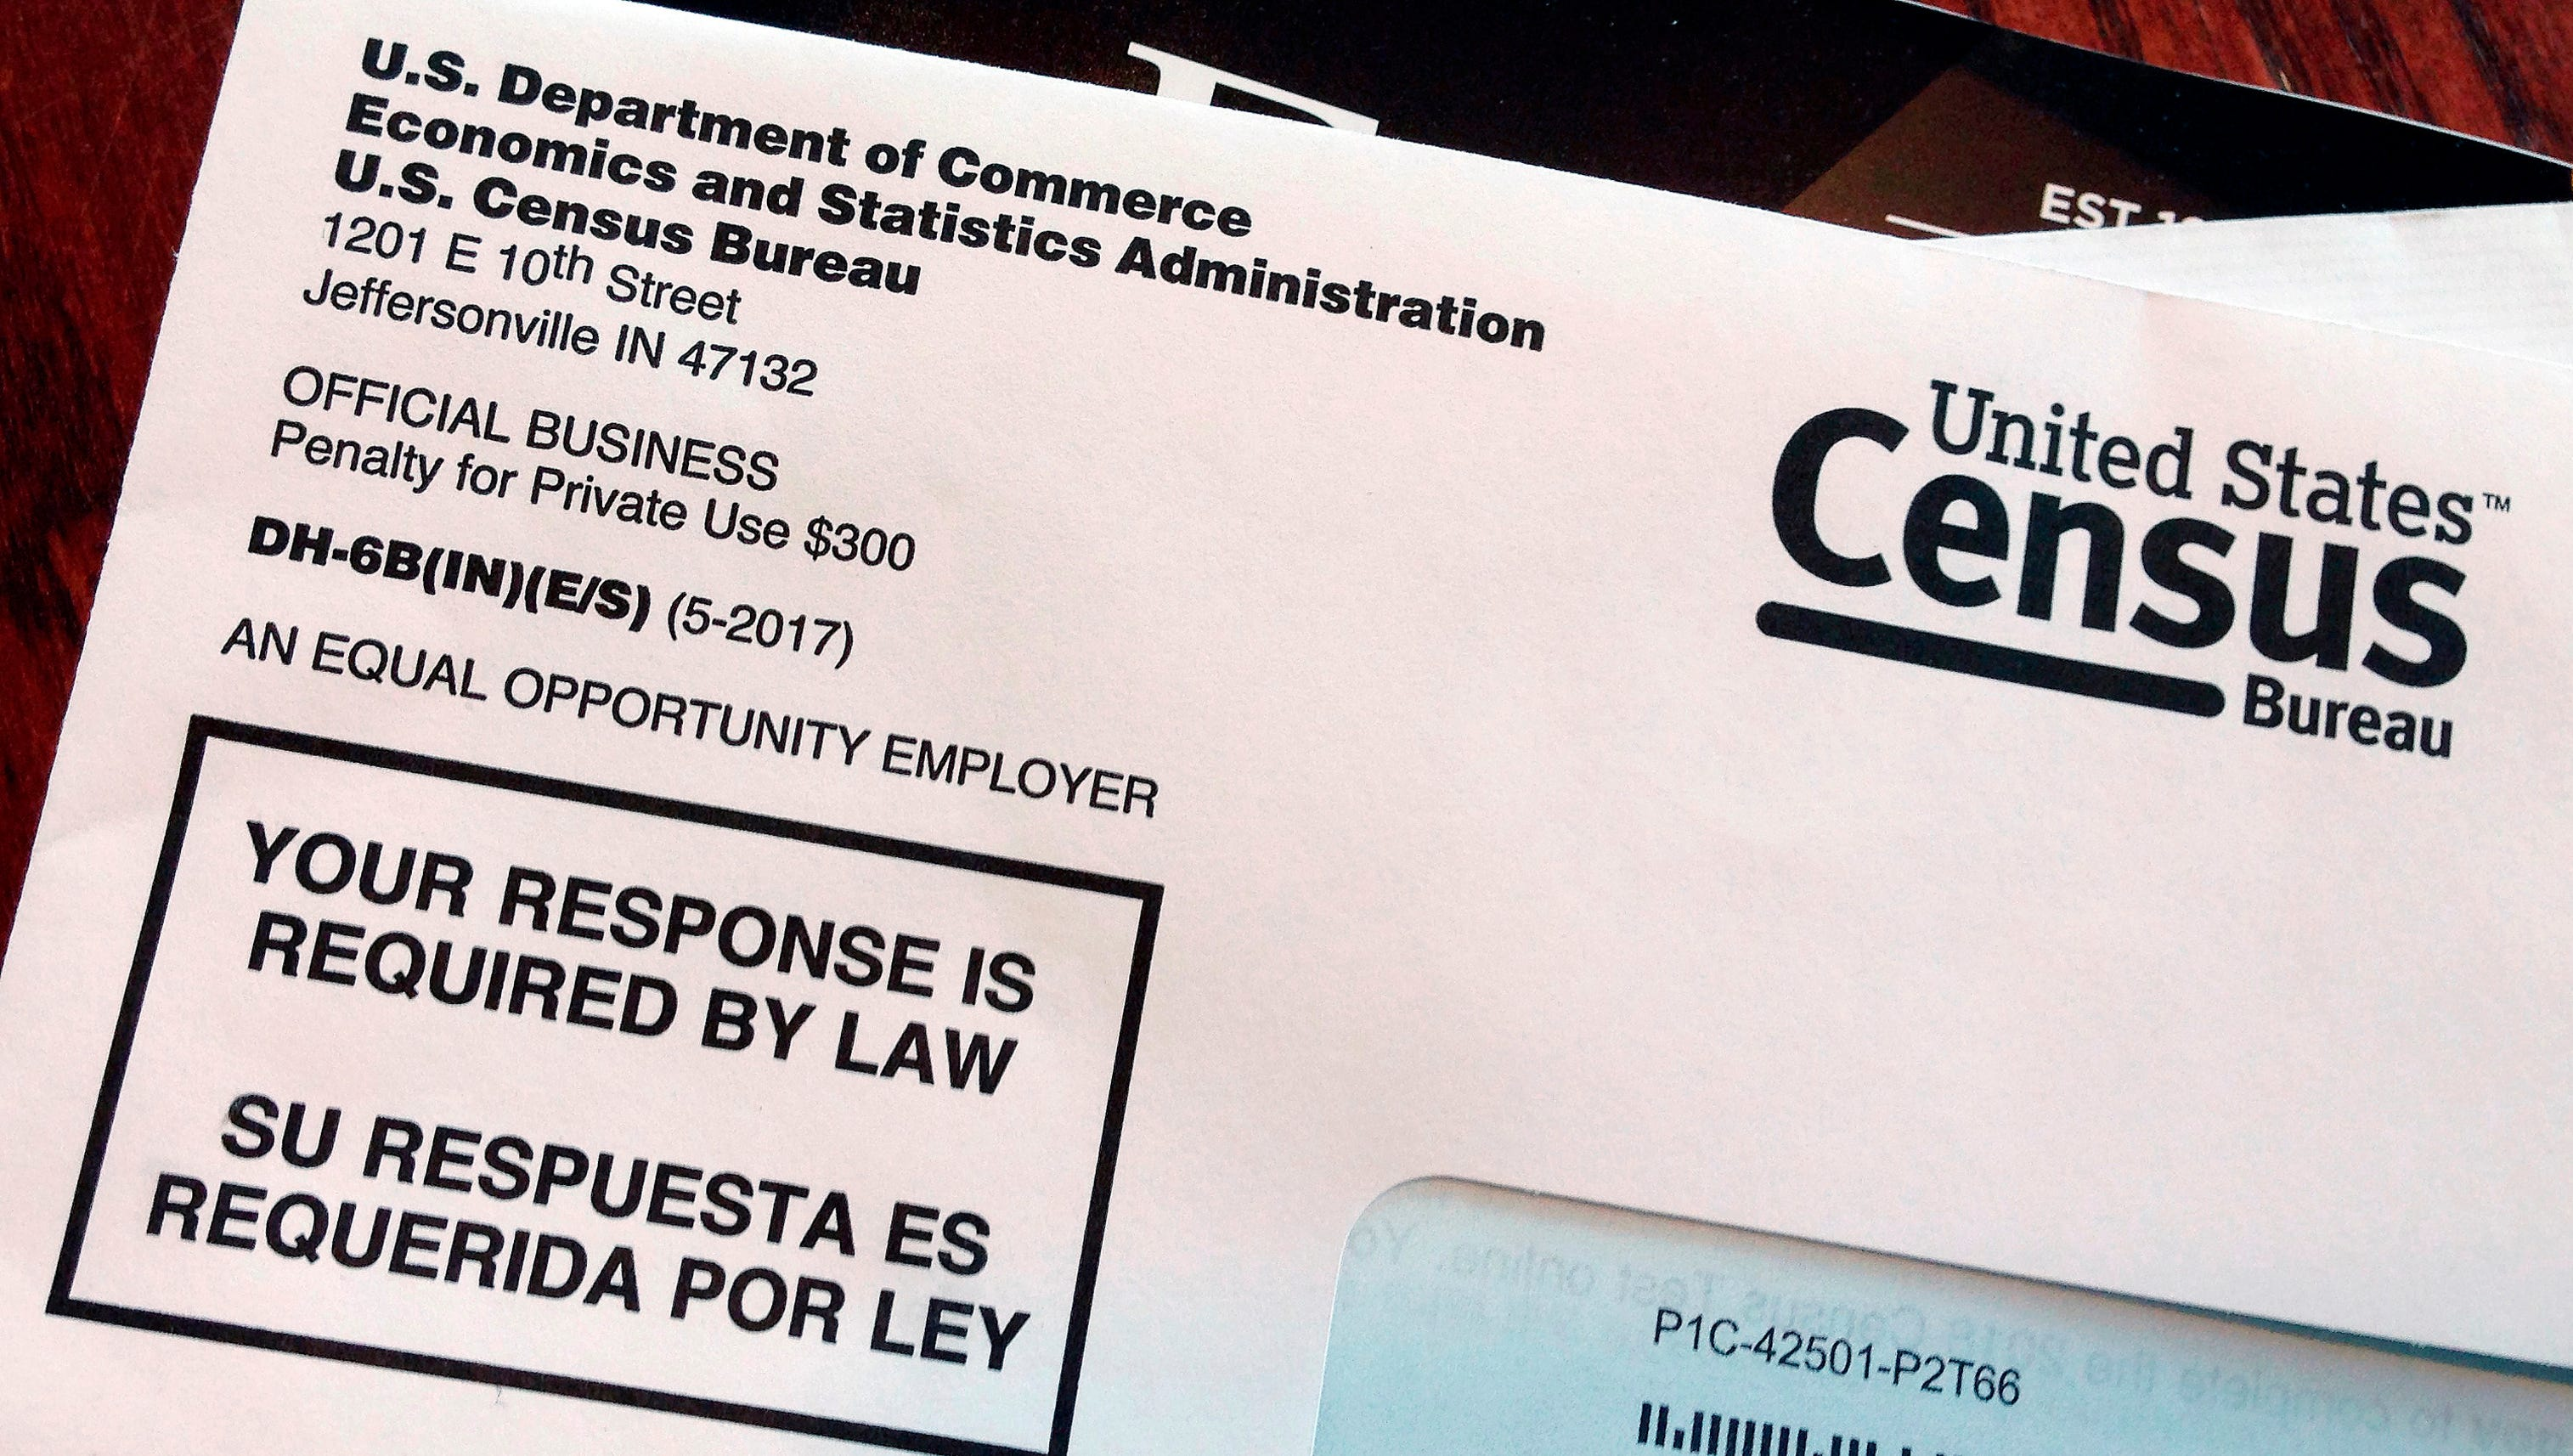 The Supreme Court will hear oral argument Tuesday on whether the 2020 census can include a question about citizenship that could affect the allocation of seats in the House of Representatives and the distribution of billions of dollars in federal money.